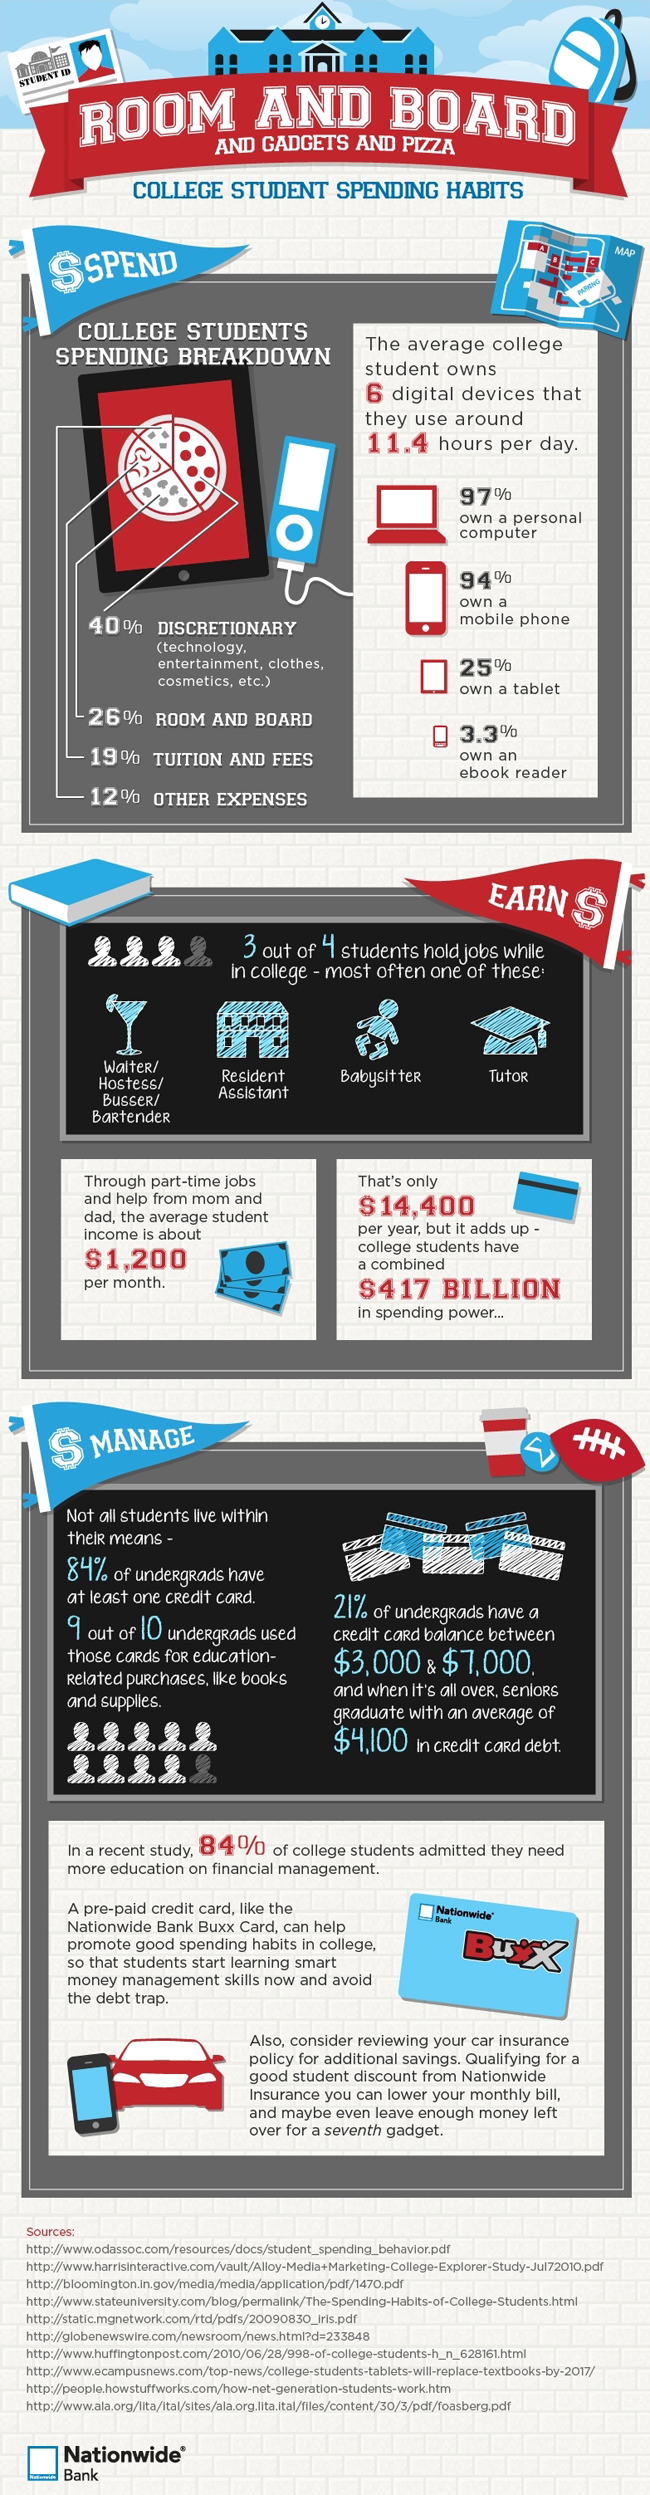 How Much Do College Students Spend And Earn